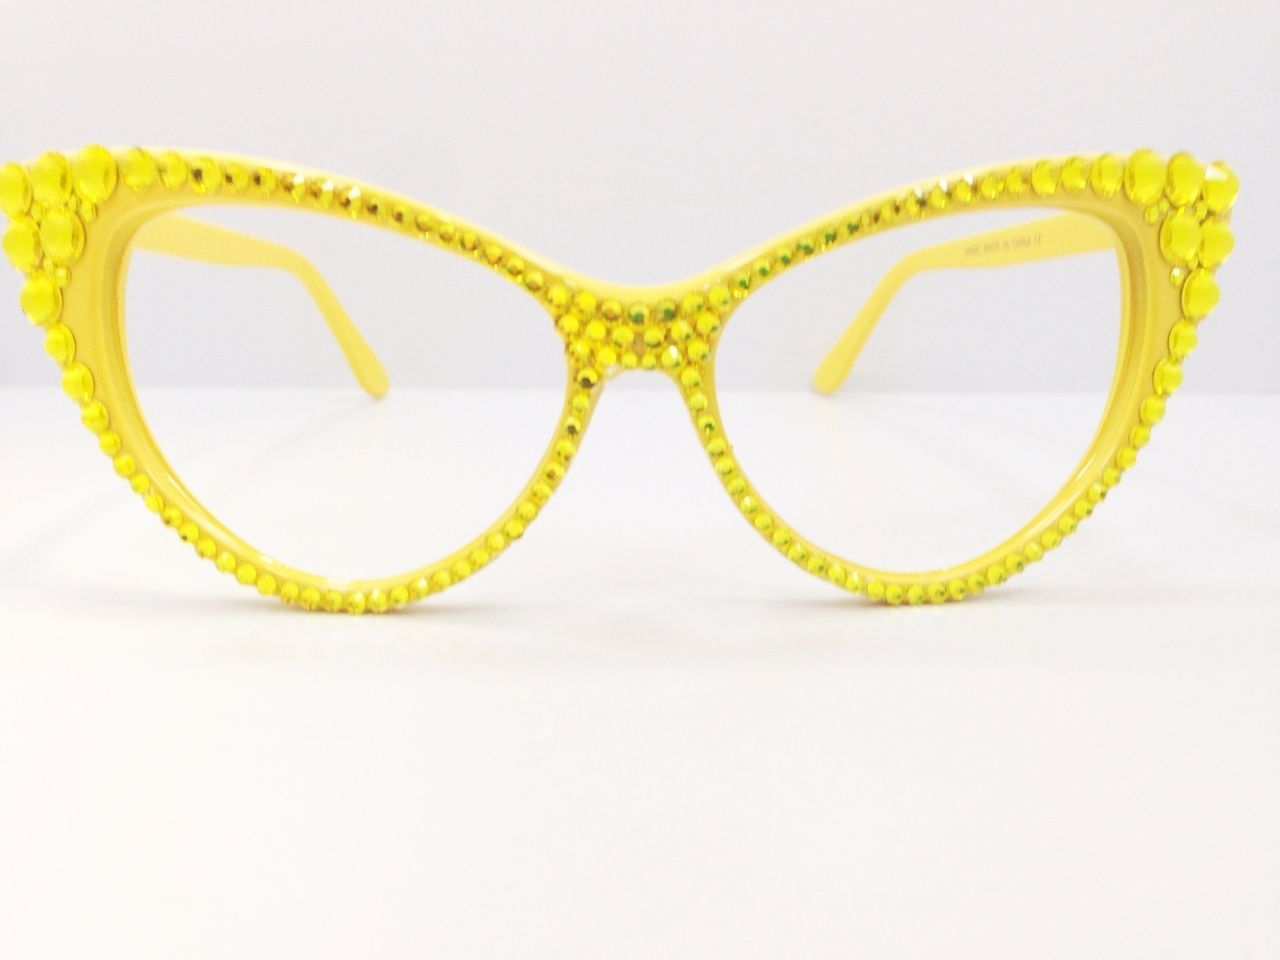 Divalicious Jewelry Crystal Cat Eye Glasses in Yellow. Available on www.divaliciousjewelry.com.